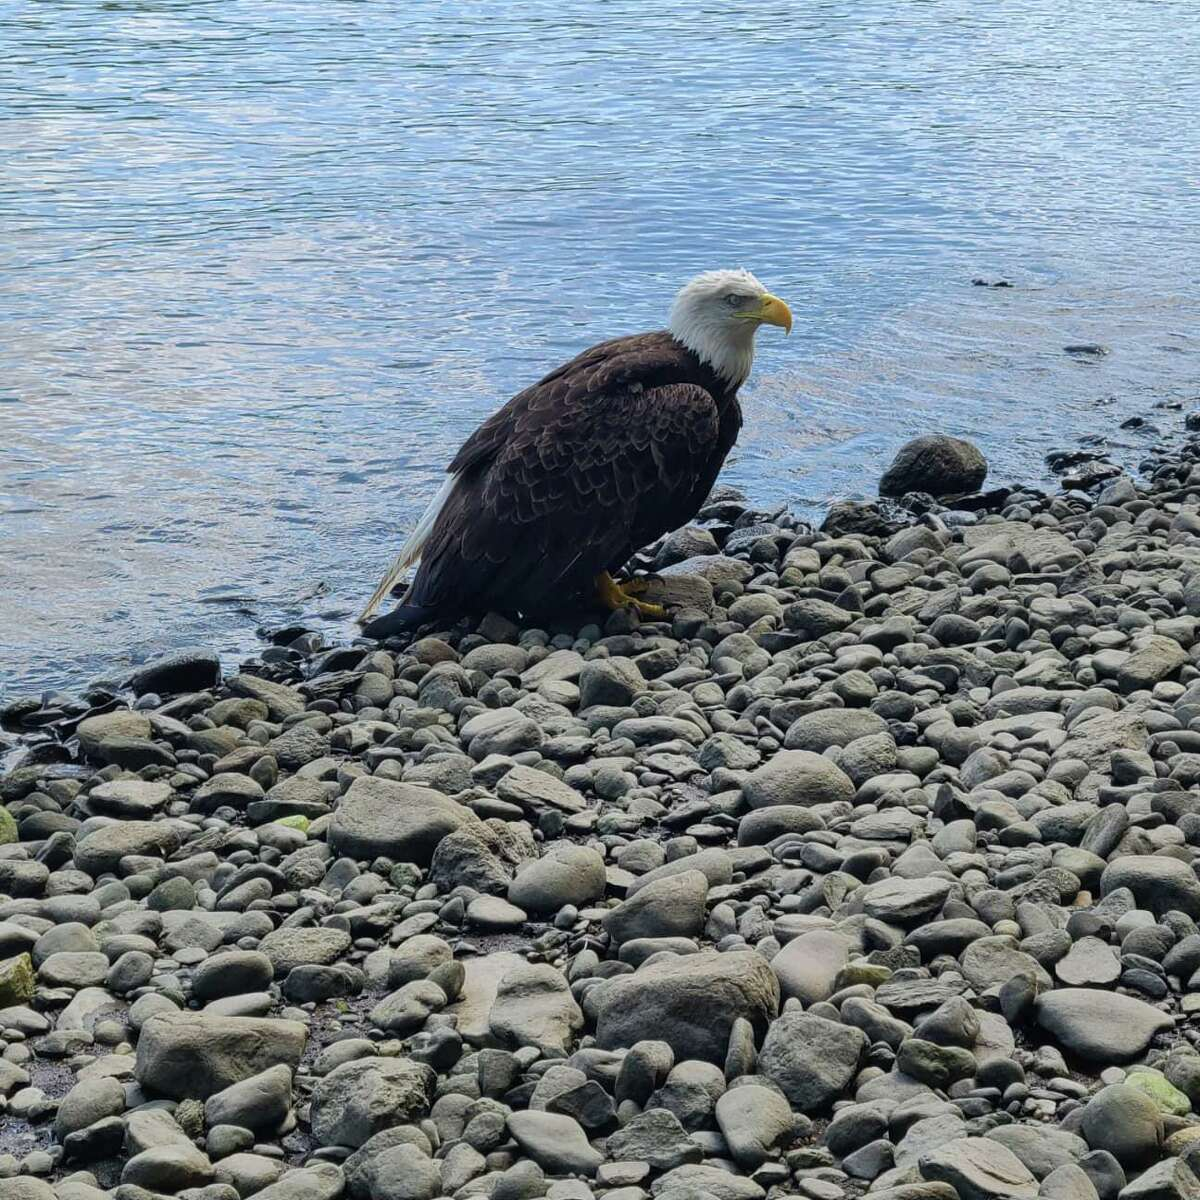 Firefighters and officials from the Department of Energy and Environmental Protection rescued an injured bald eagle from the Housatonic River Saturday.